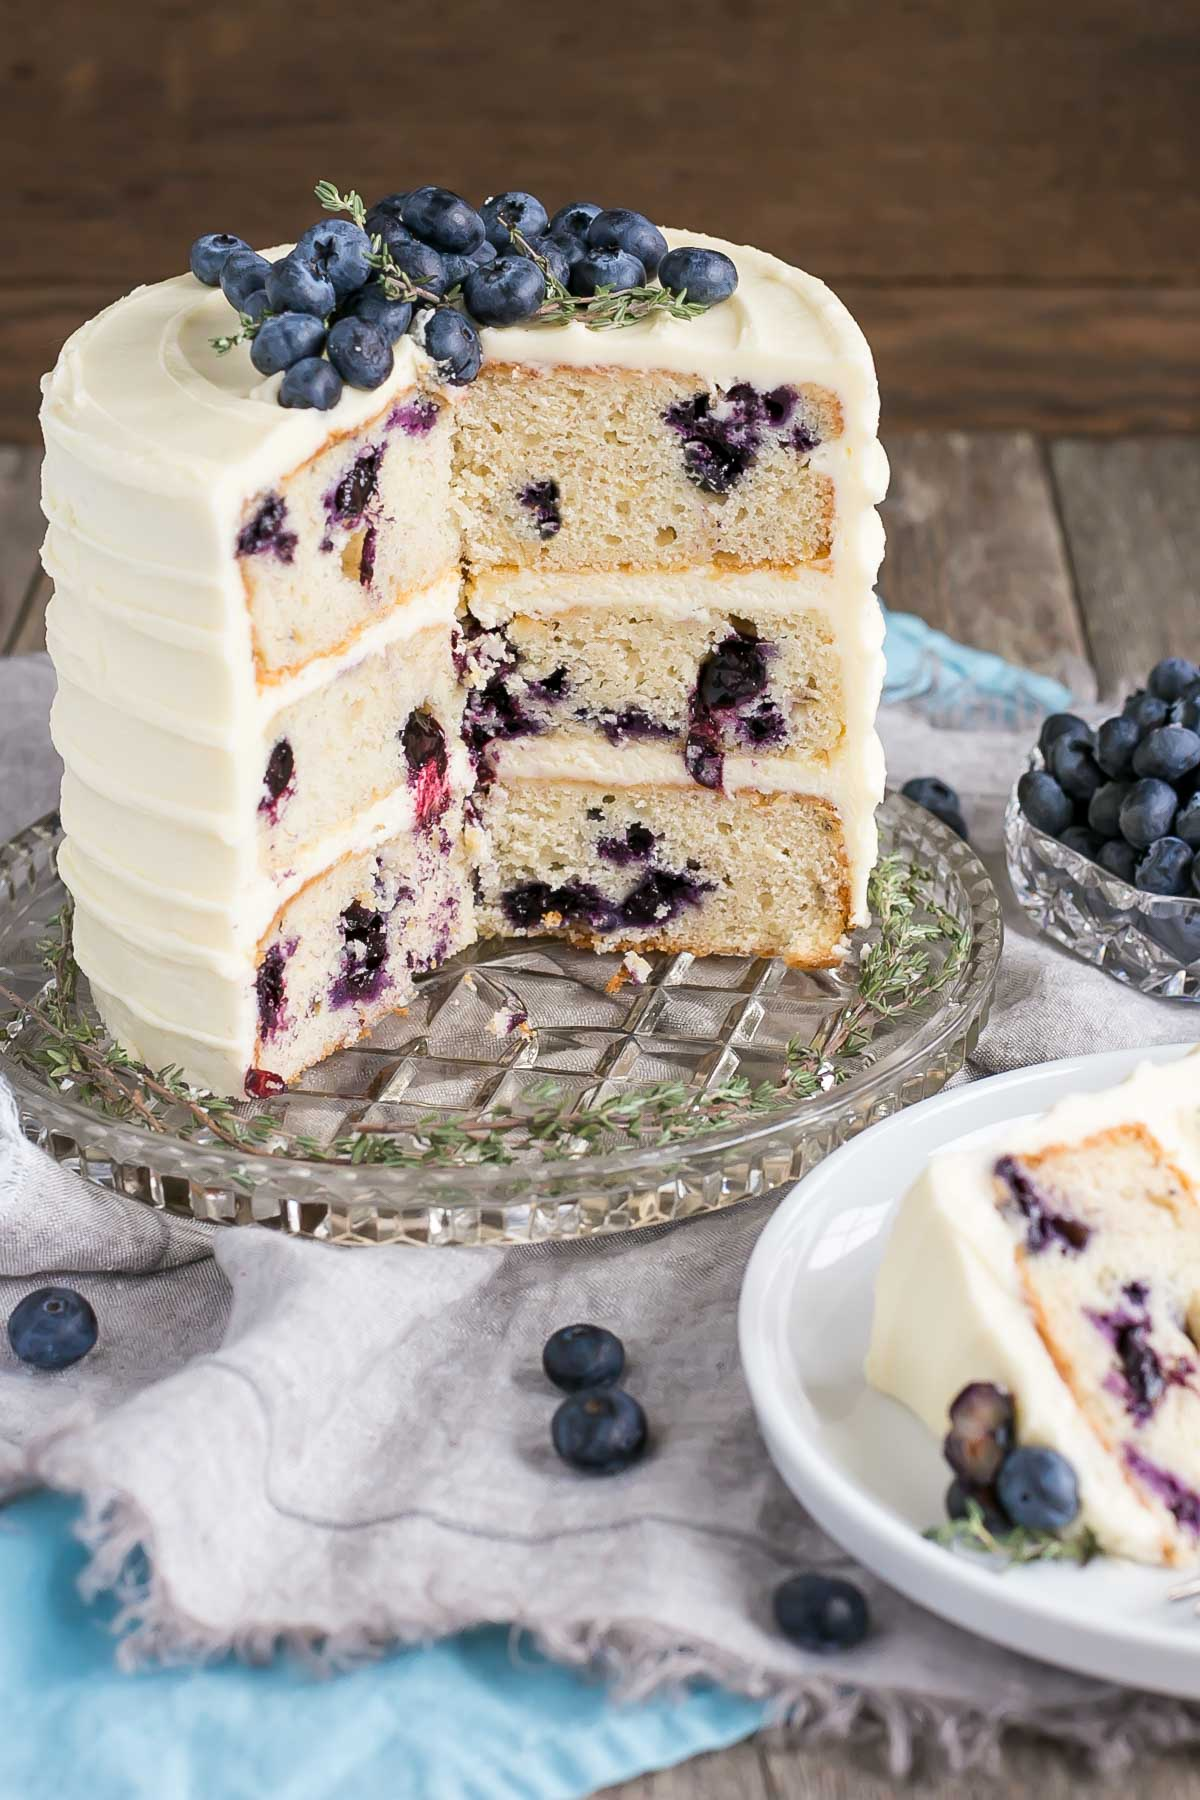 Cross section of this Blueberry Banana Cake.